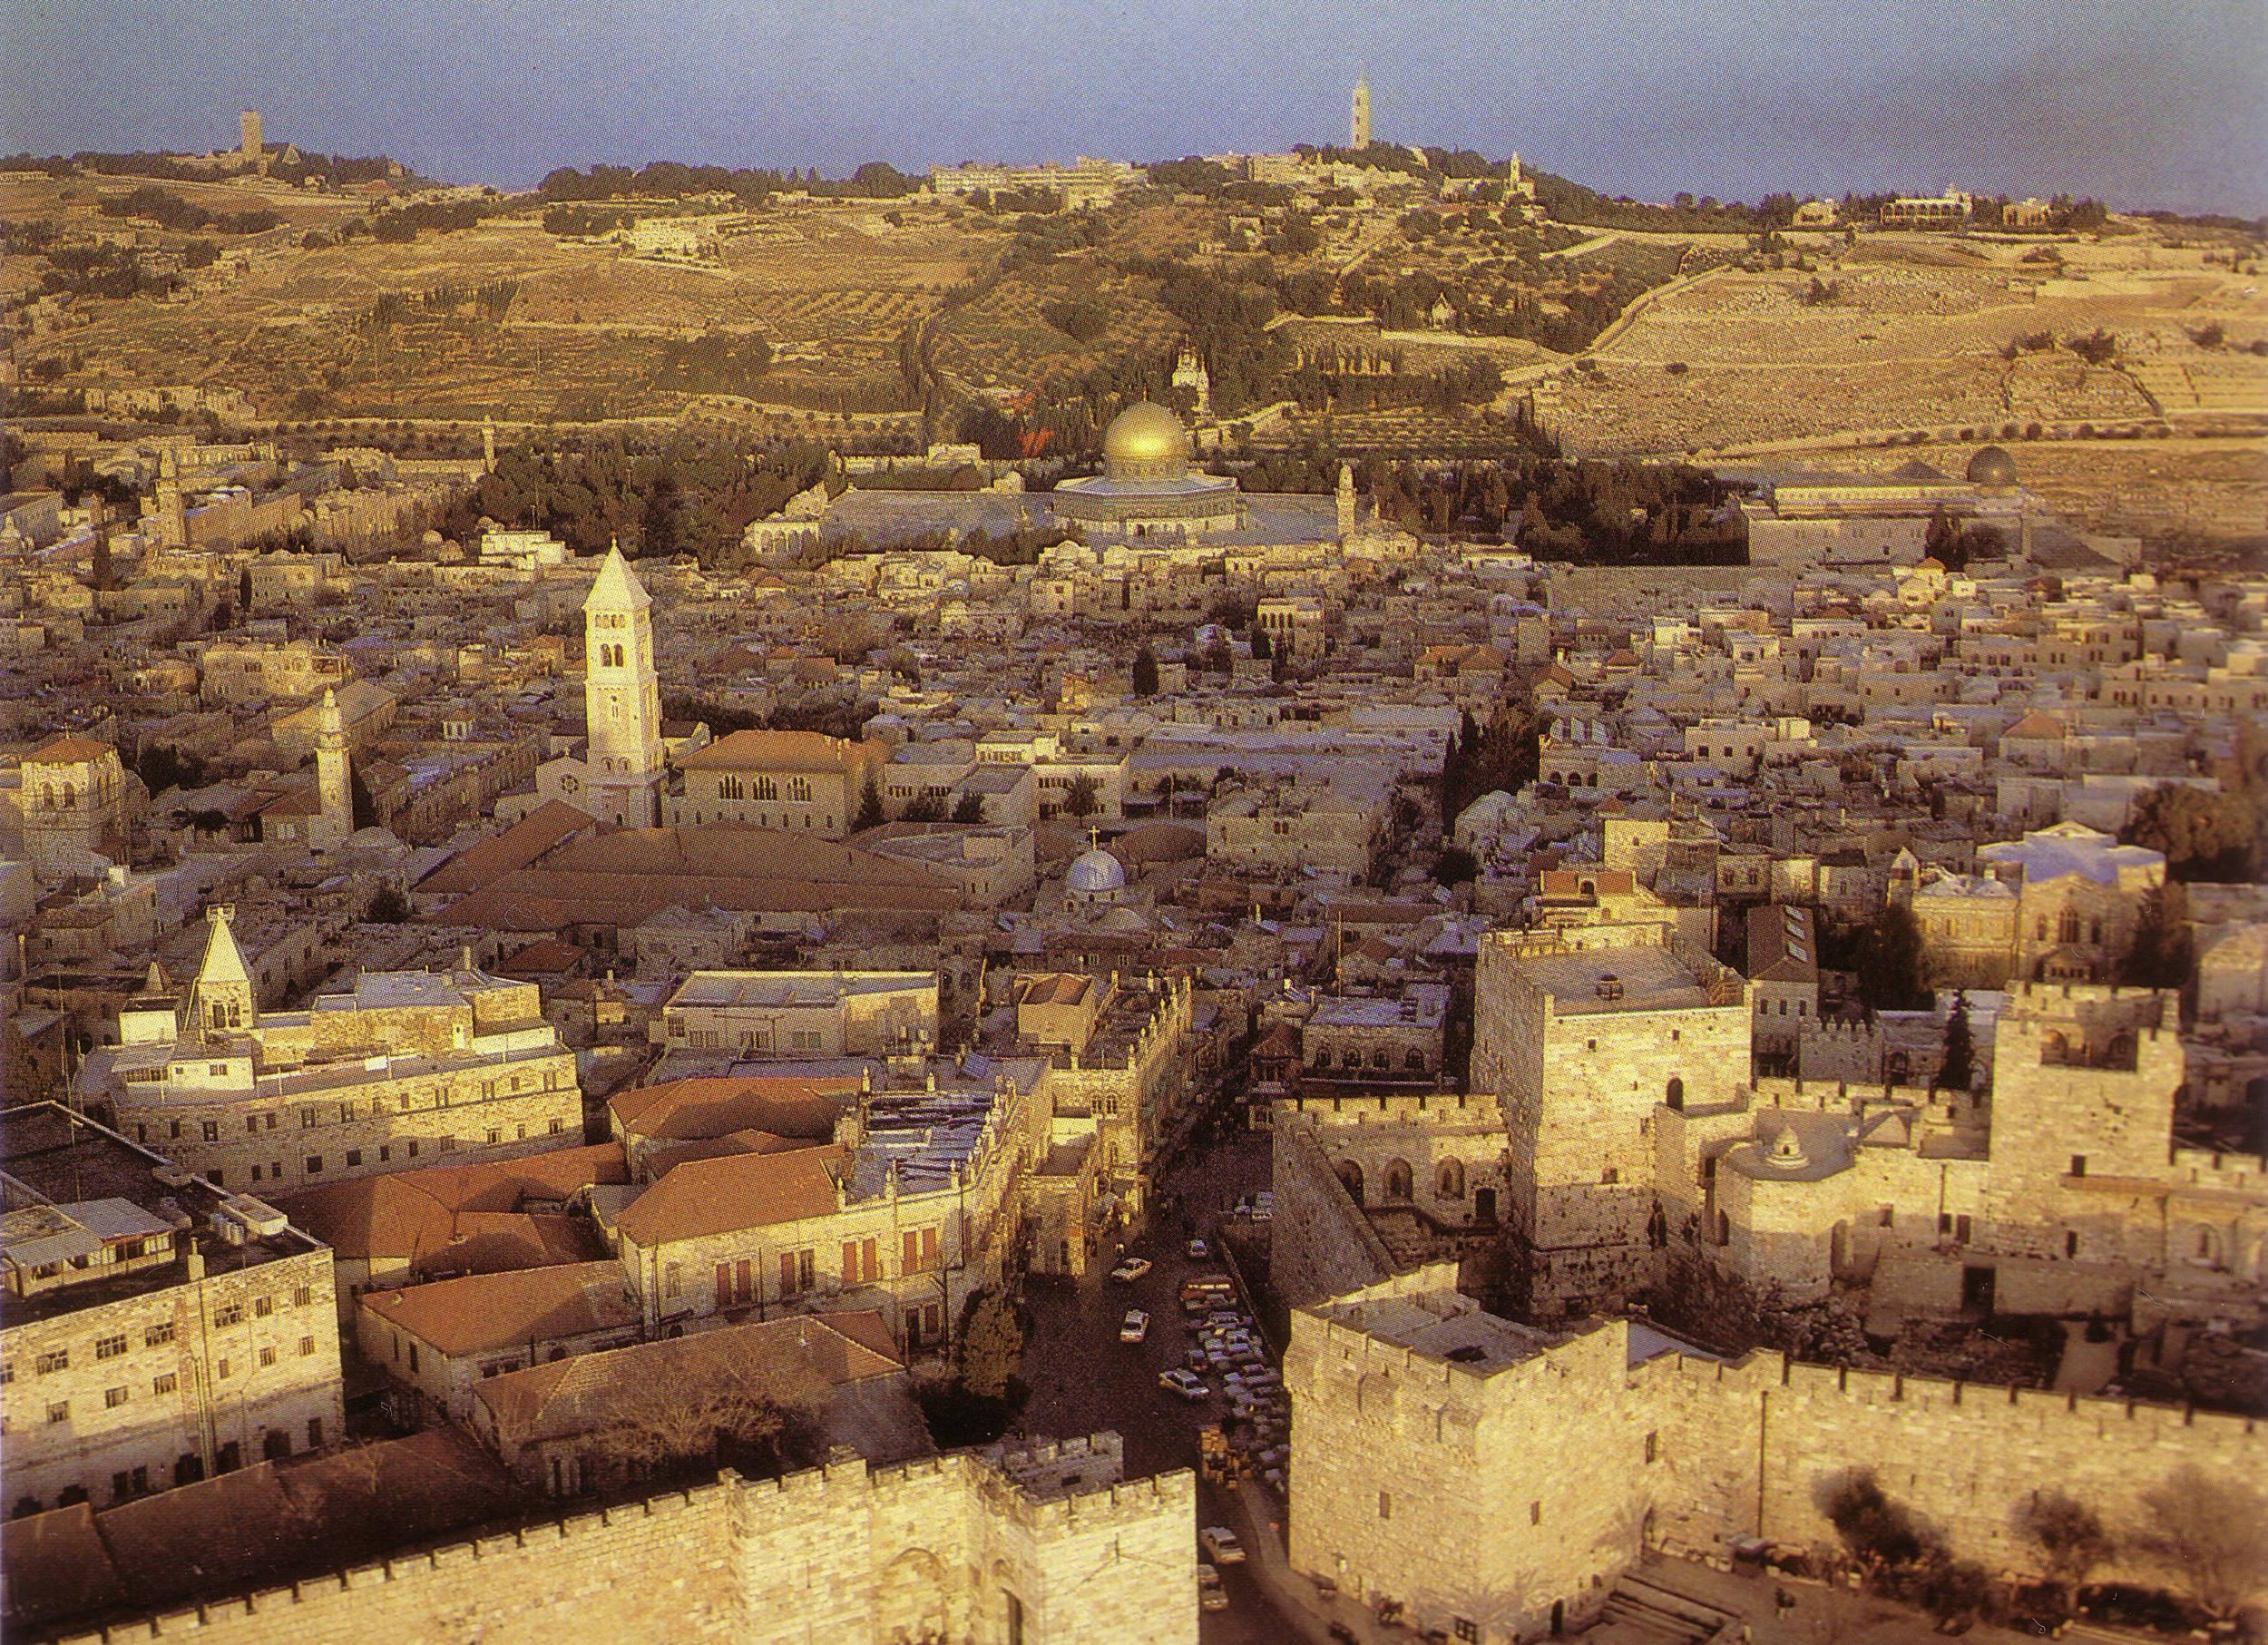 Jerusalem with Mount of Olives beyond